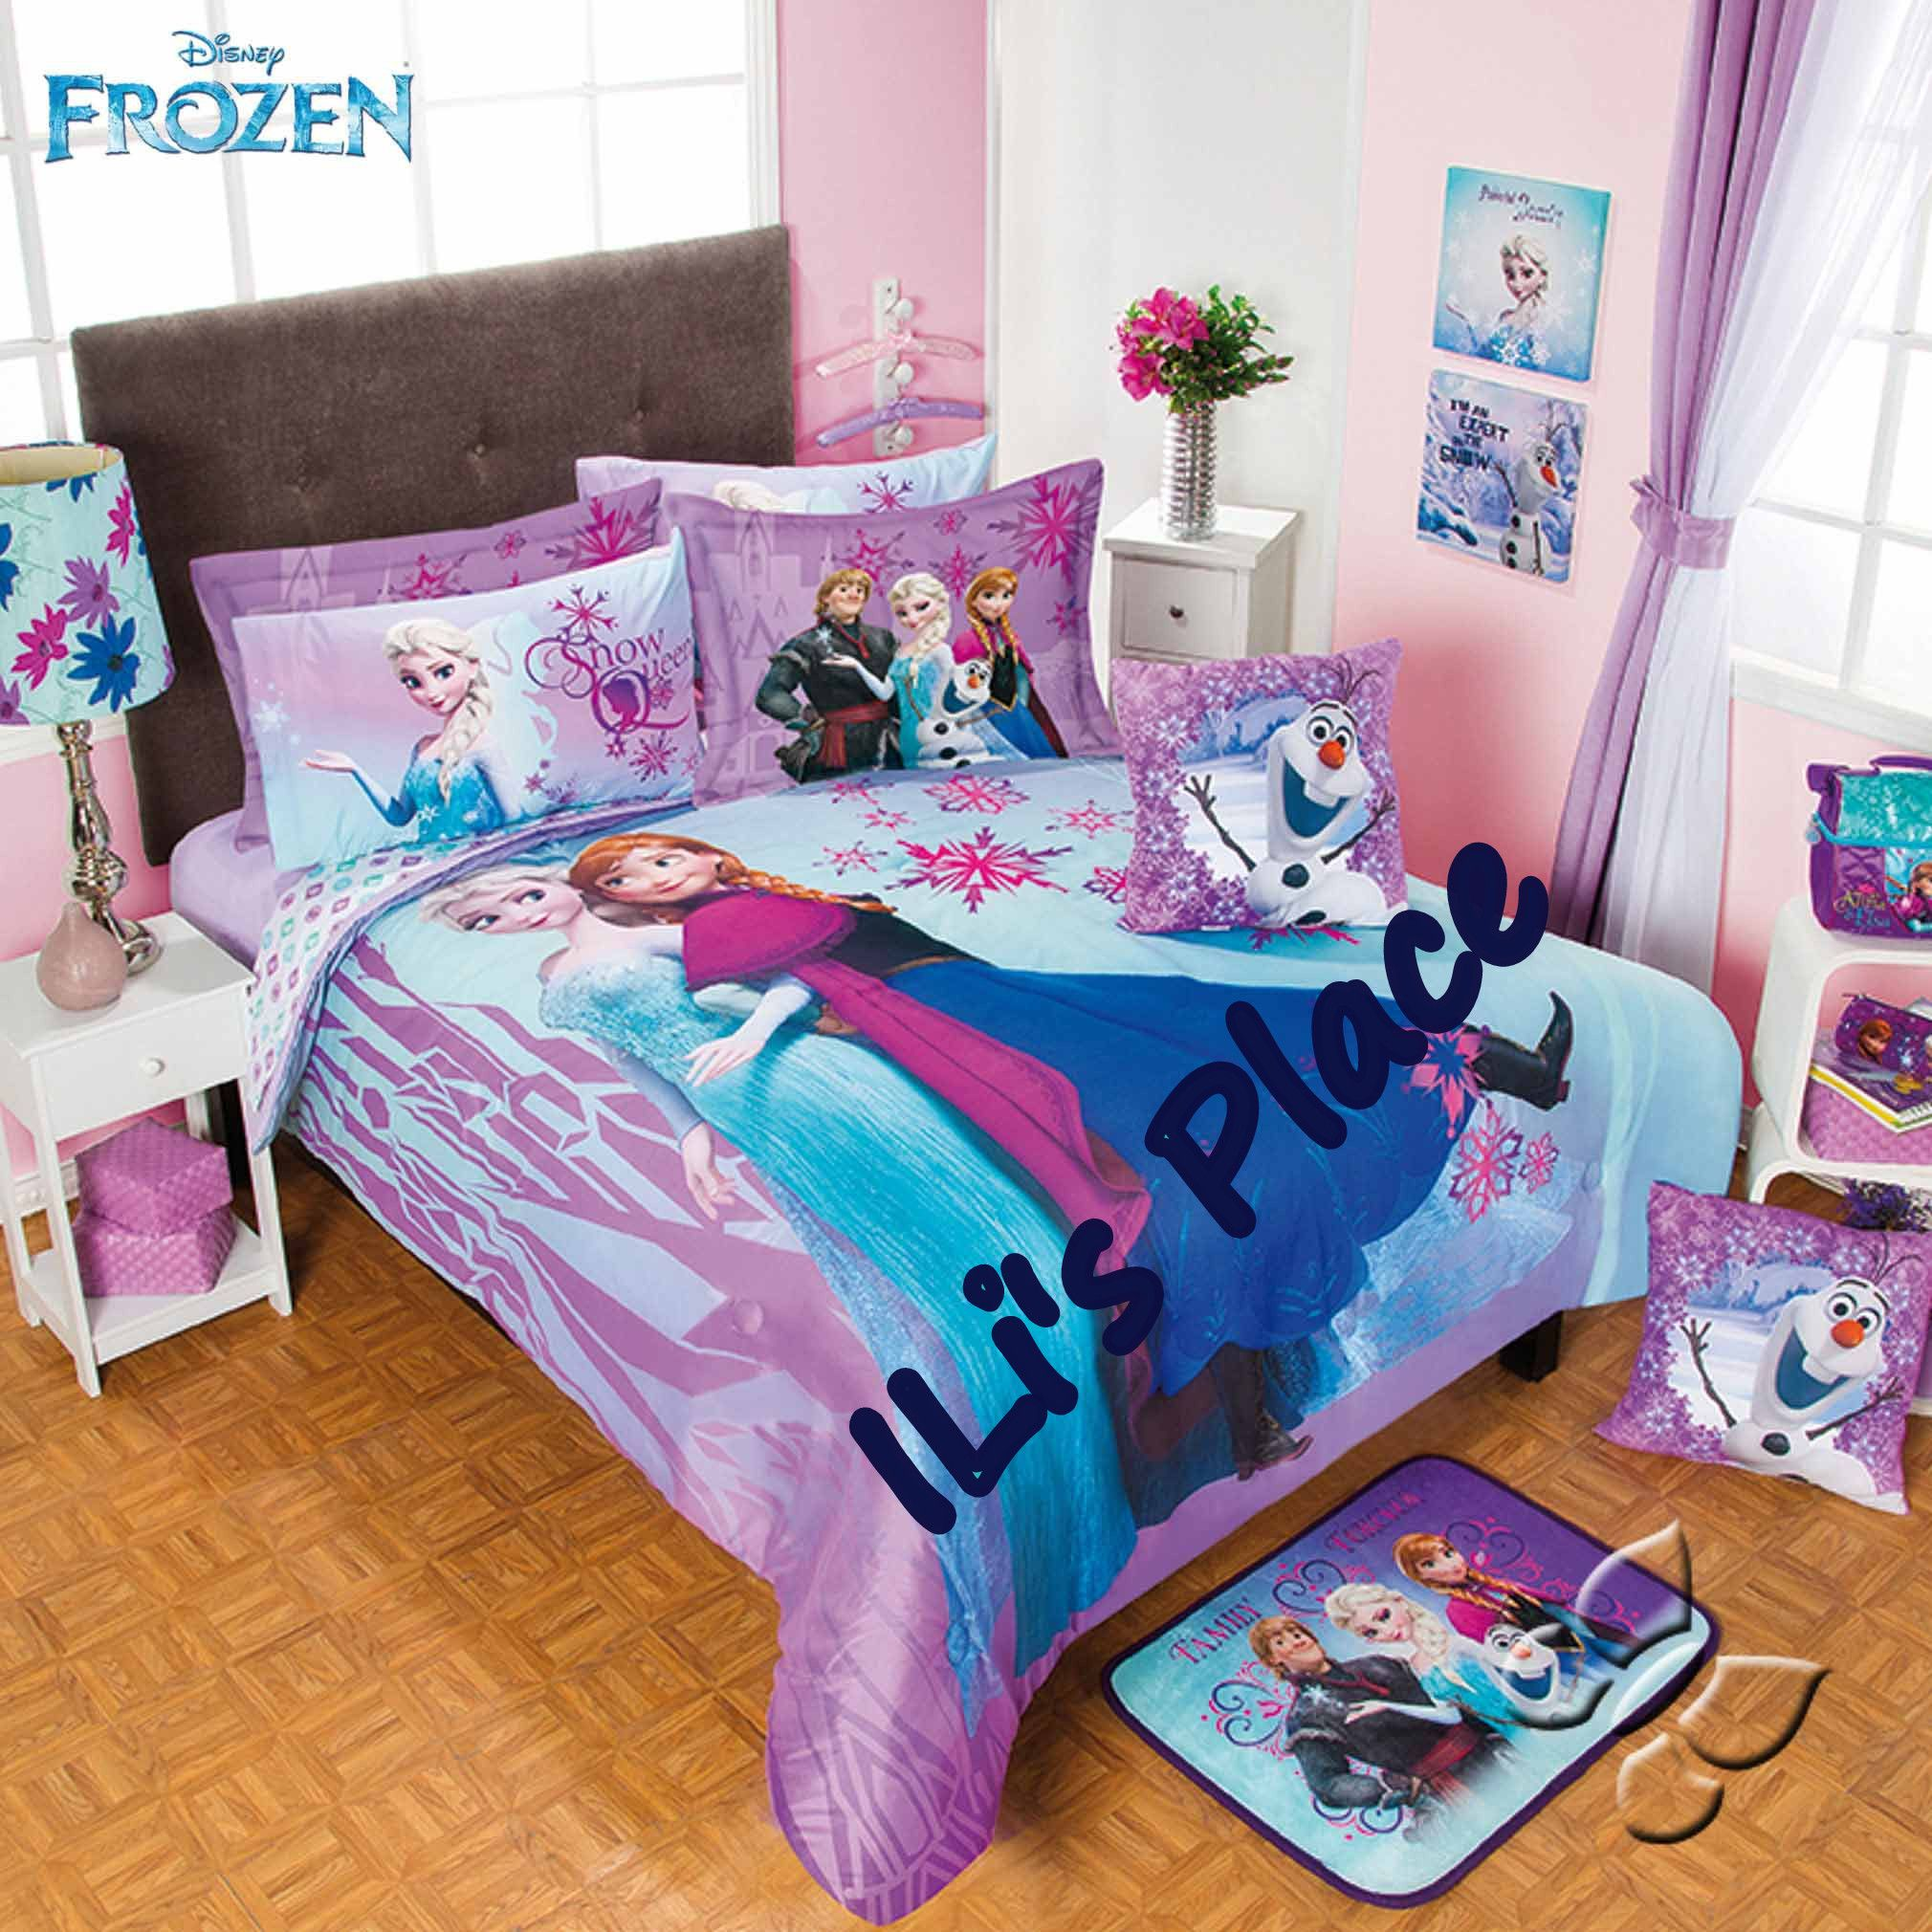 ORDER BEFORE WE SELL OUT at ilisplace yahoo 864 200 2377 DISNEY